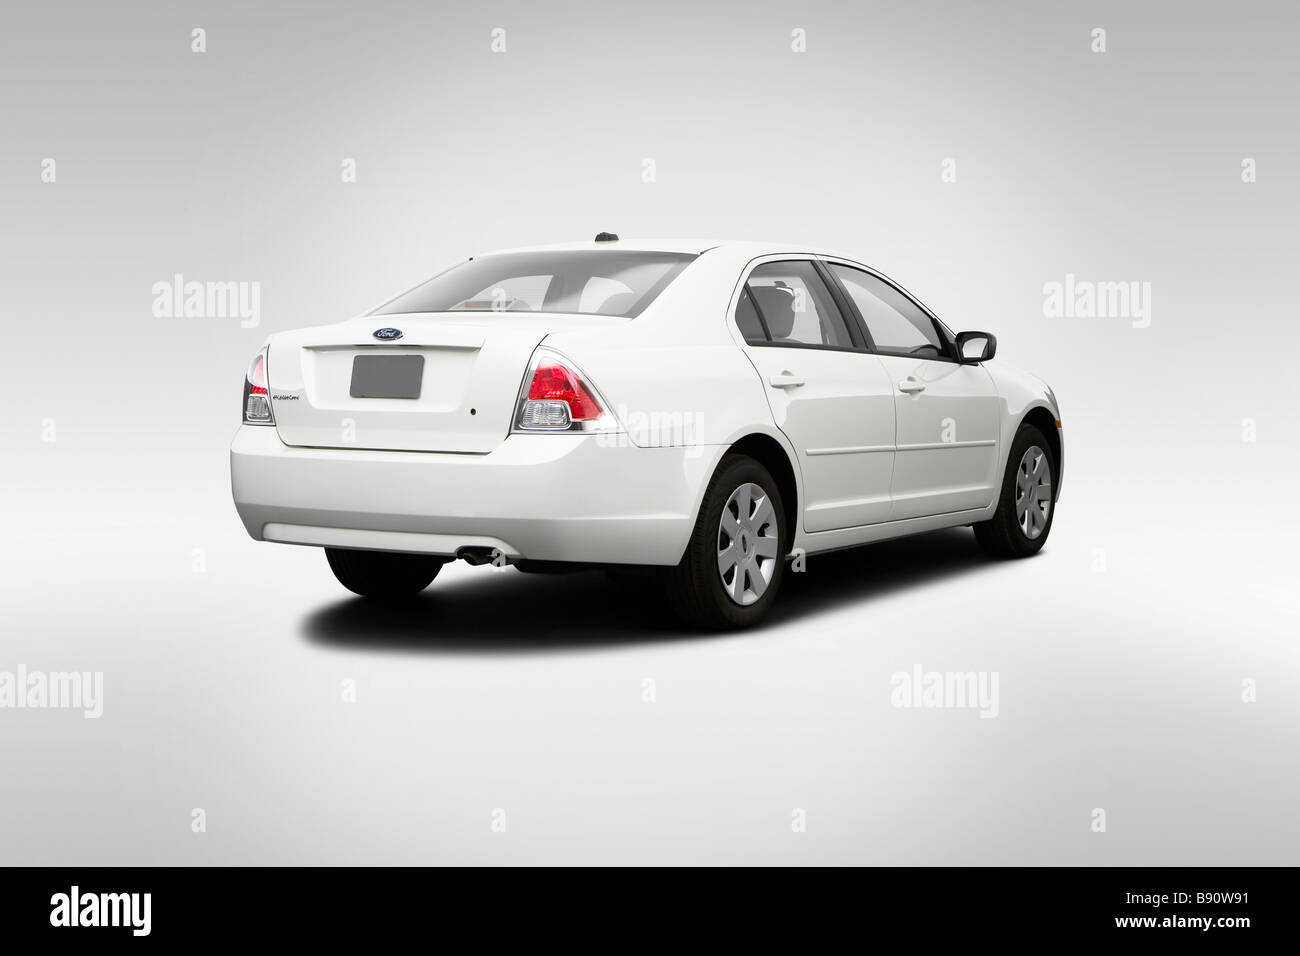 2009 Ford Fusion S in White - Rear angle view - Stock Image